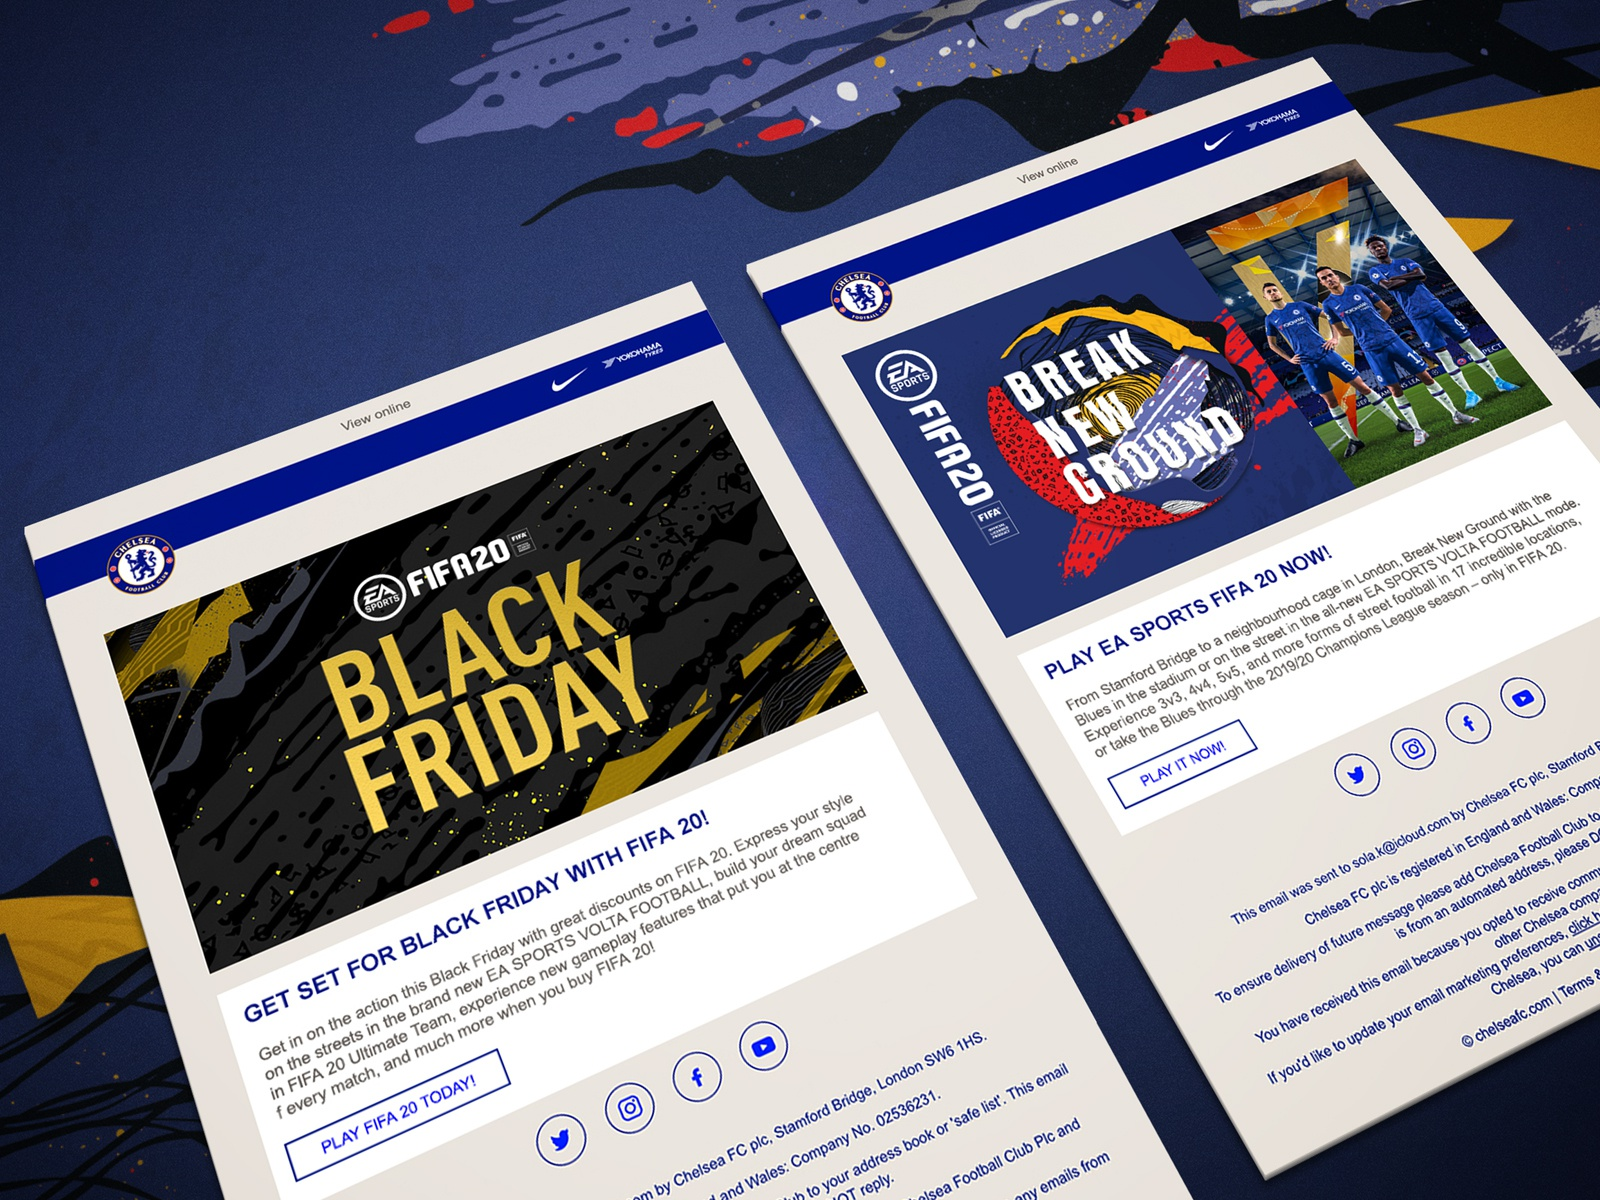 Fifa 20 Chelsea Emails By Karl Tongue On Dribbble